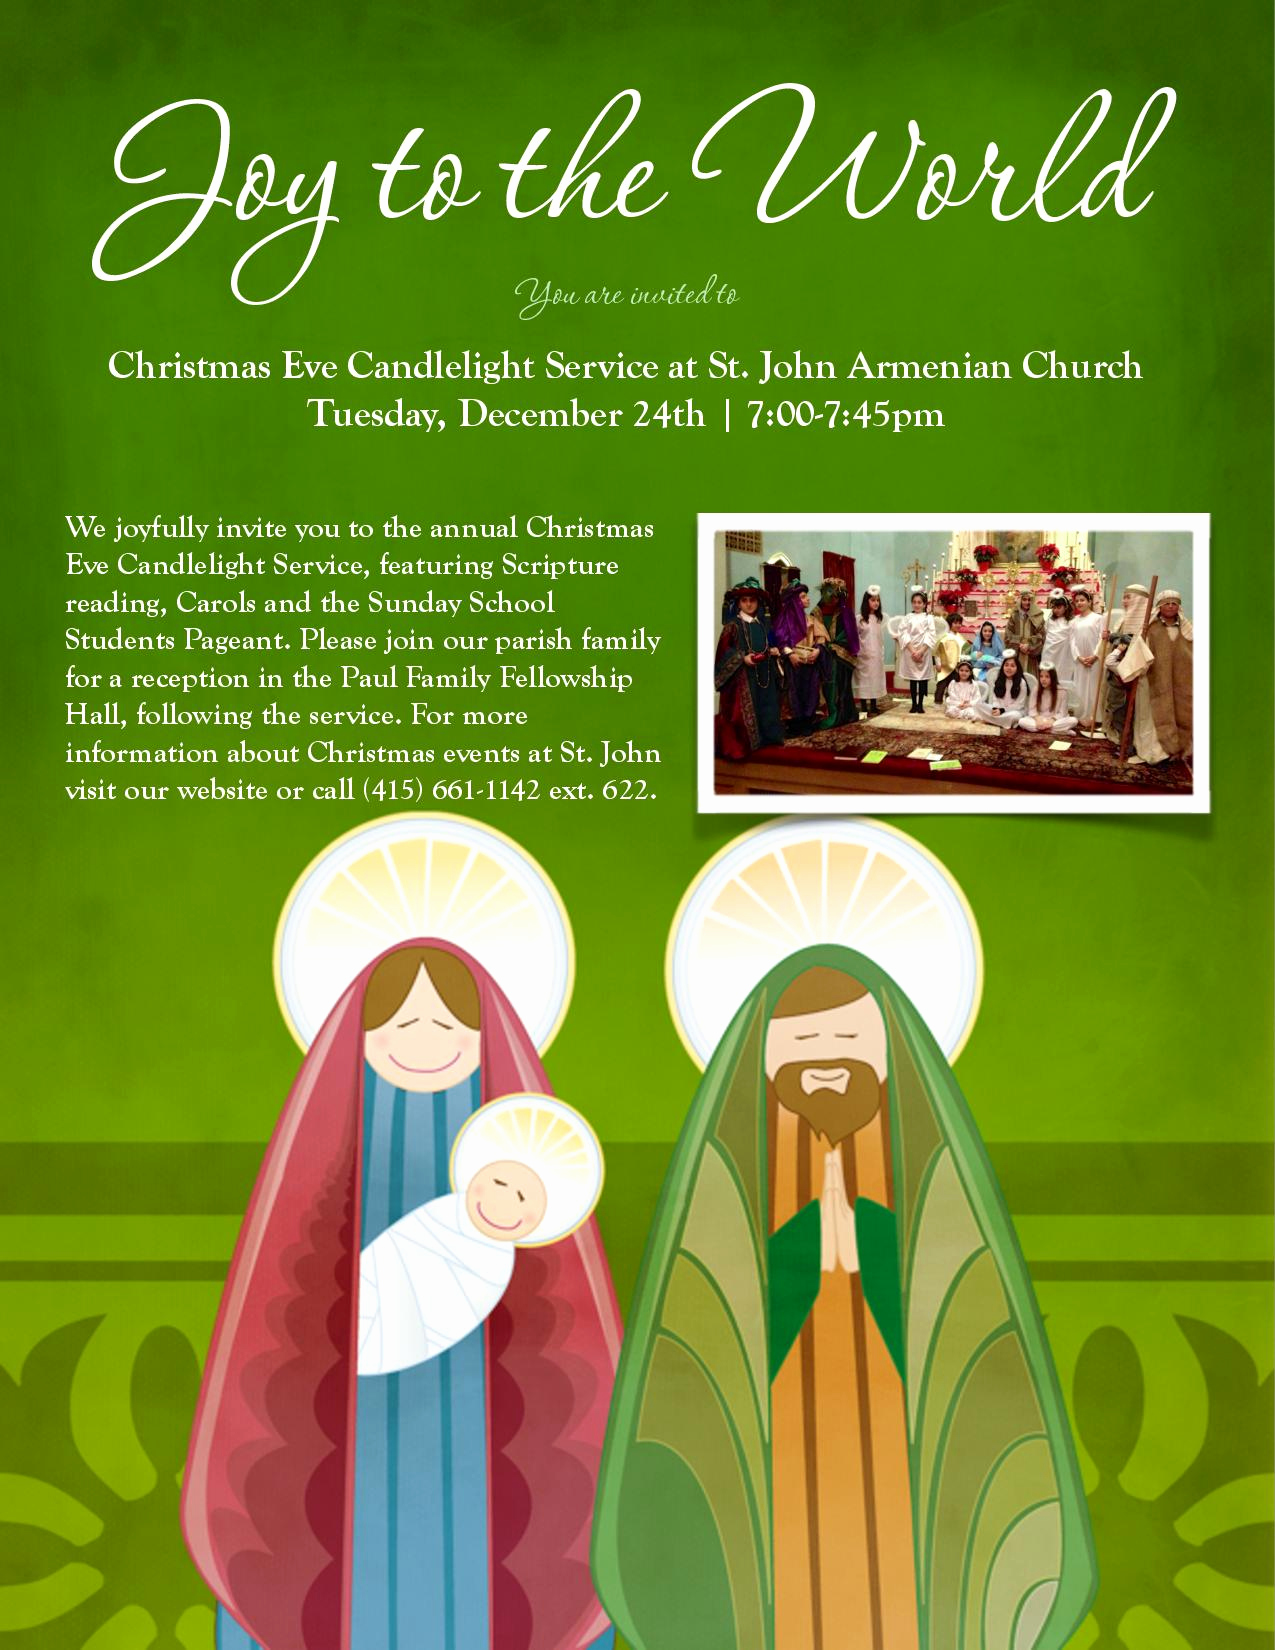 Sunday School Invitation Flyer New Christmas Eve Candlelight Service